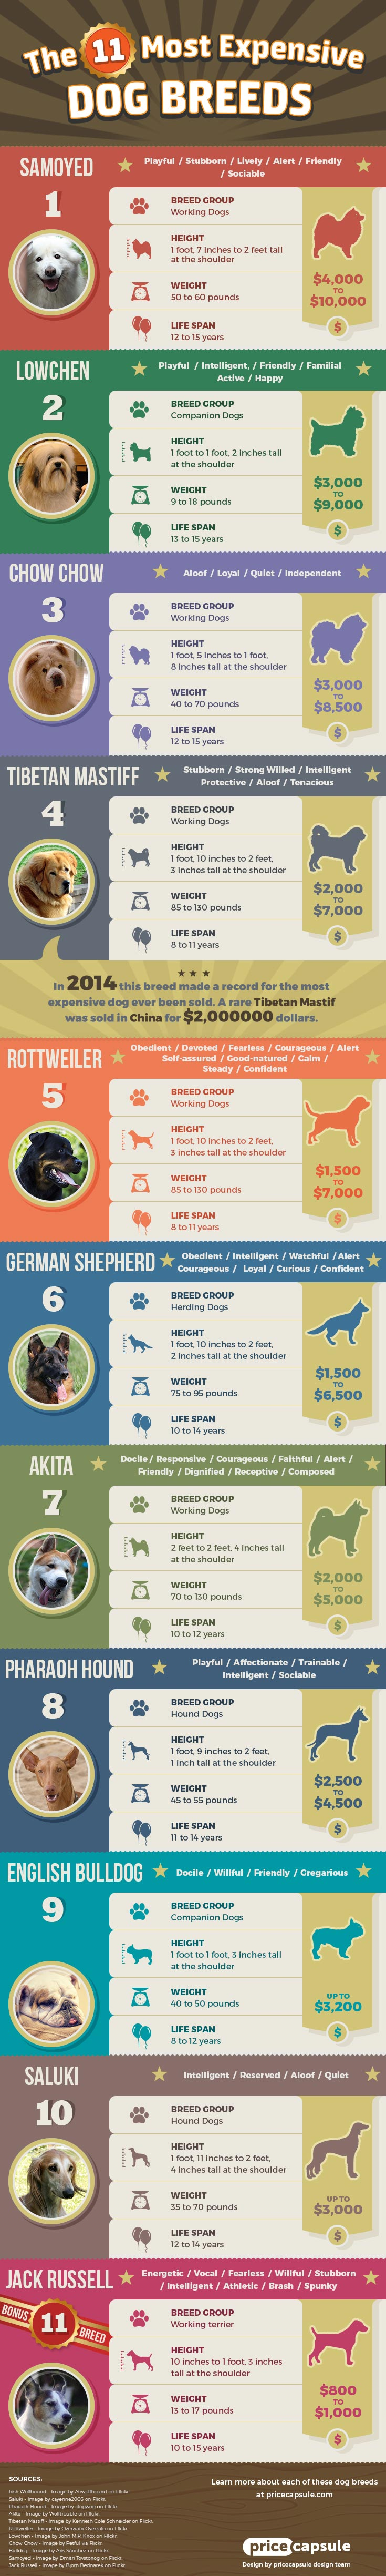 11 Most Expensive Dog Breeds Infographic